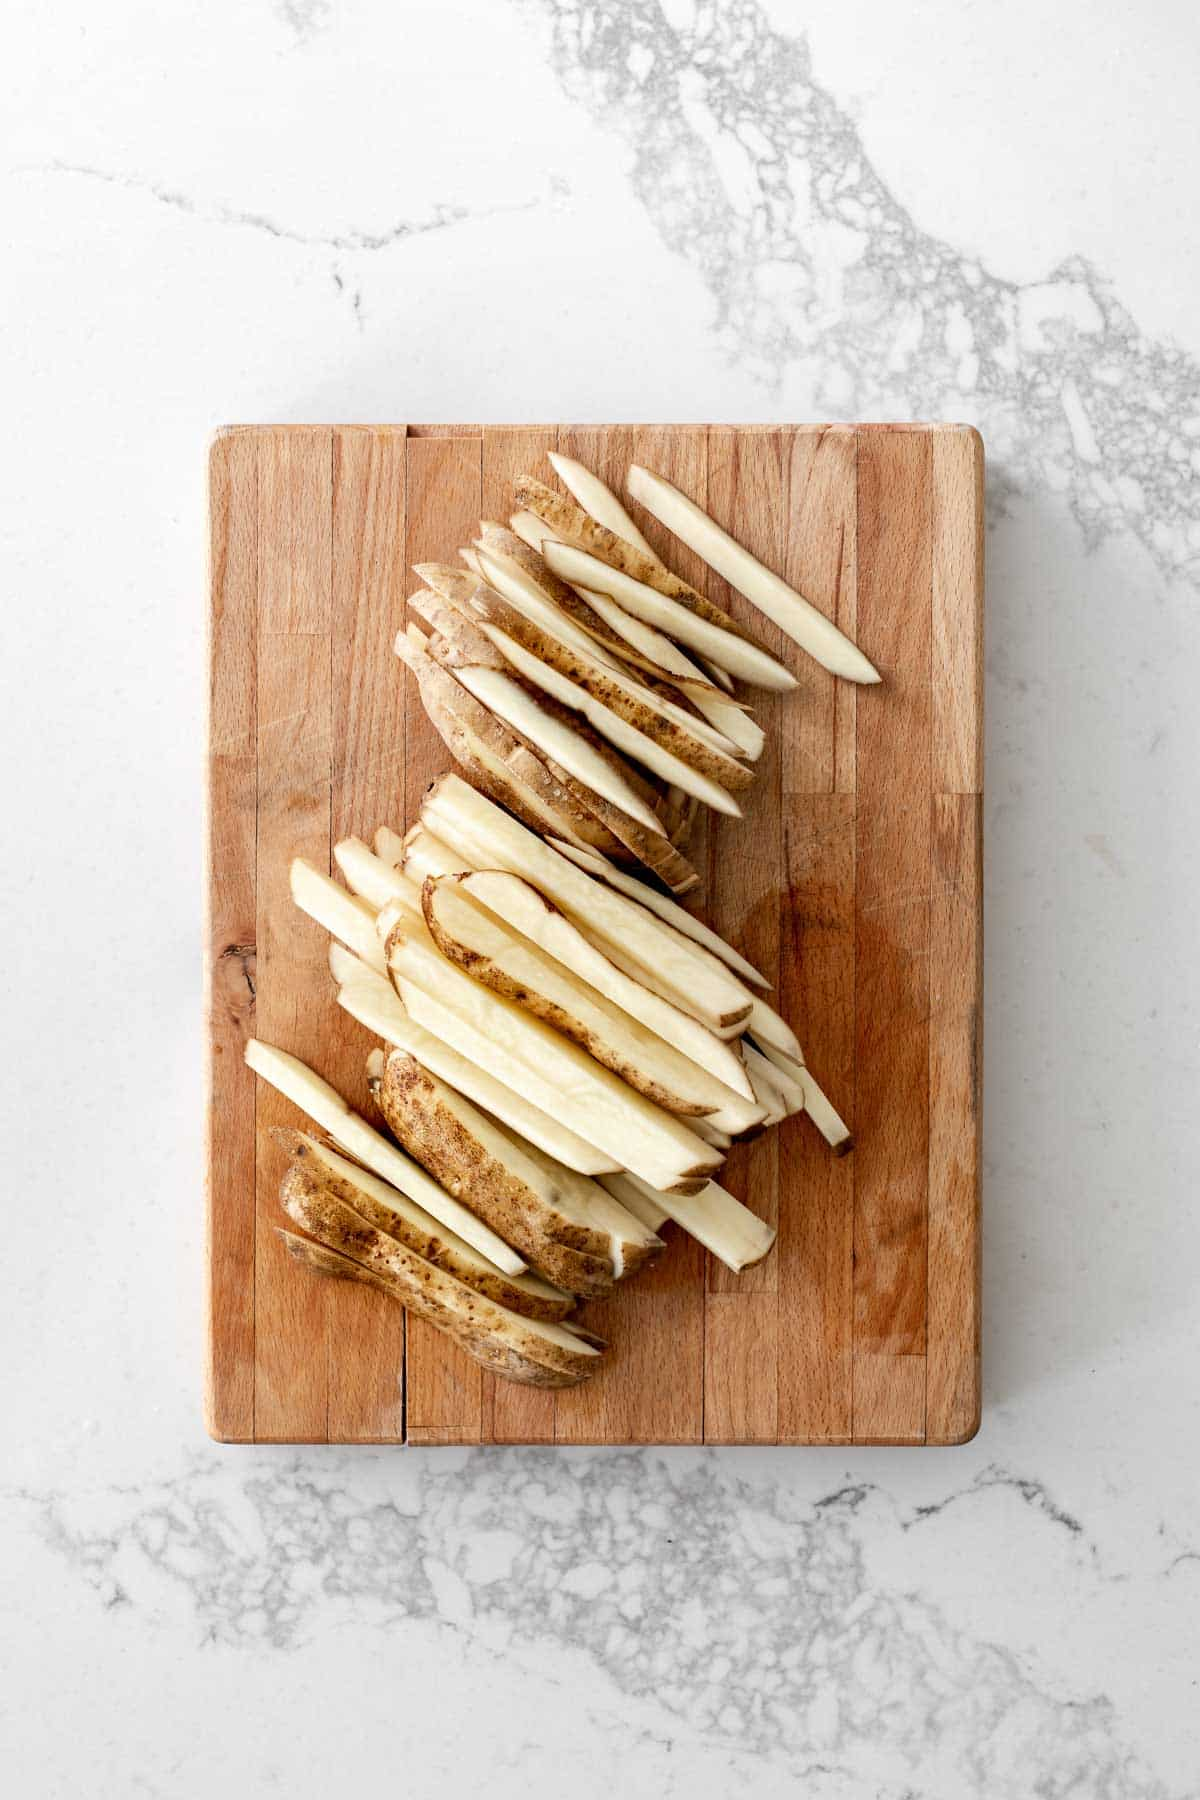 Potatoes cut into sticks on a wooden cutting board